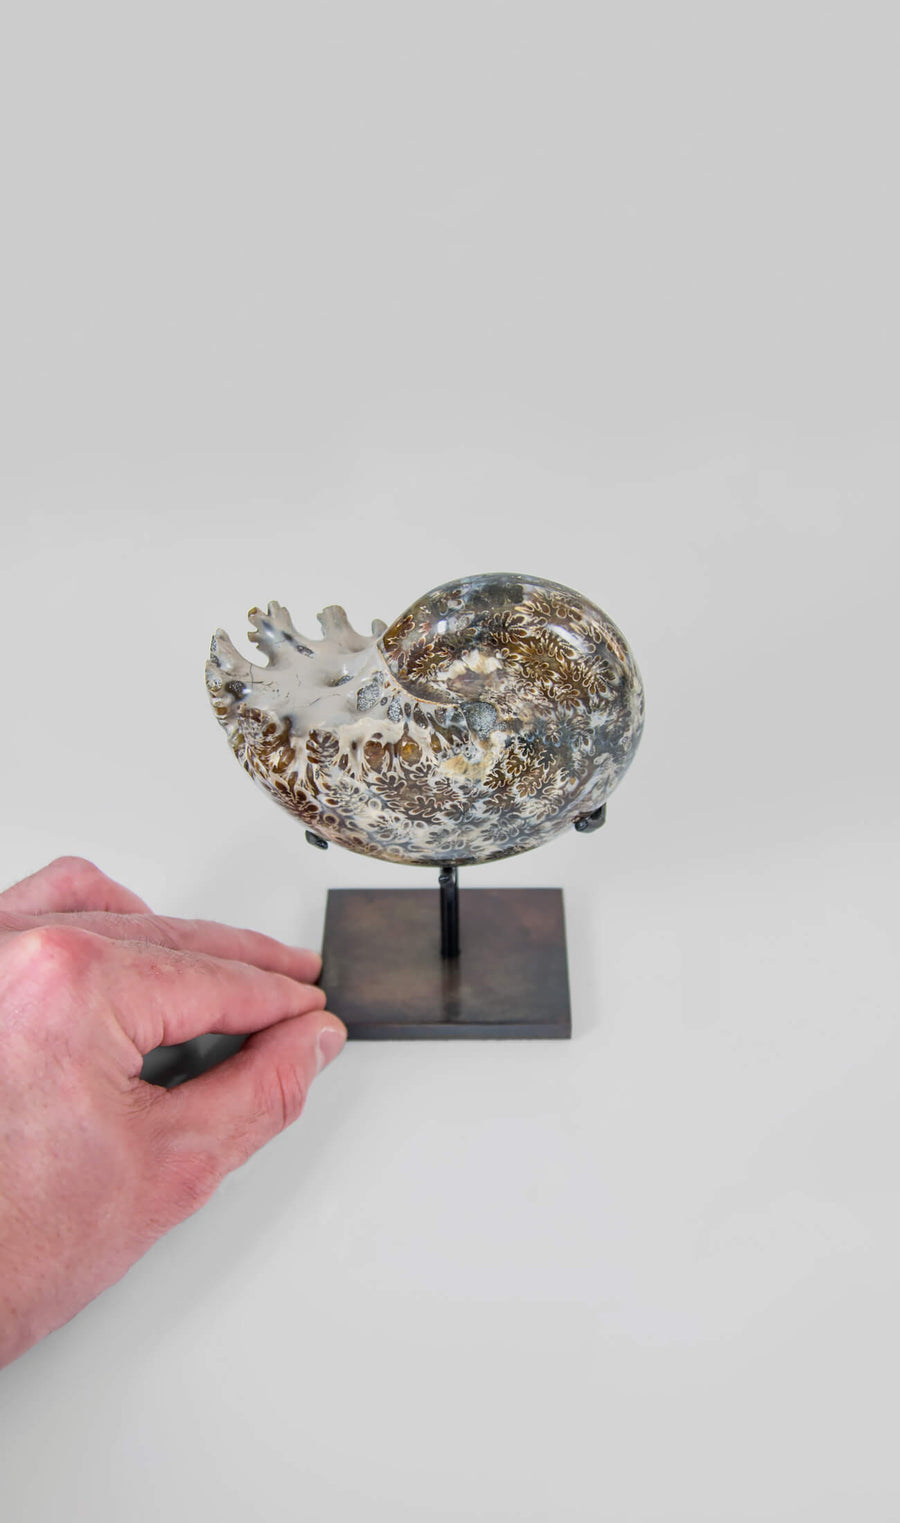 Polished Suture Patterned Phylloceras Ammonite on Bronze